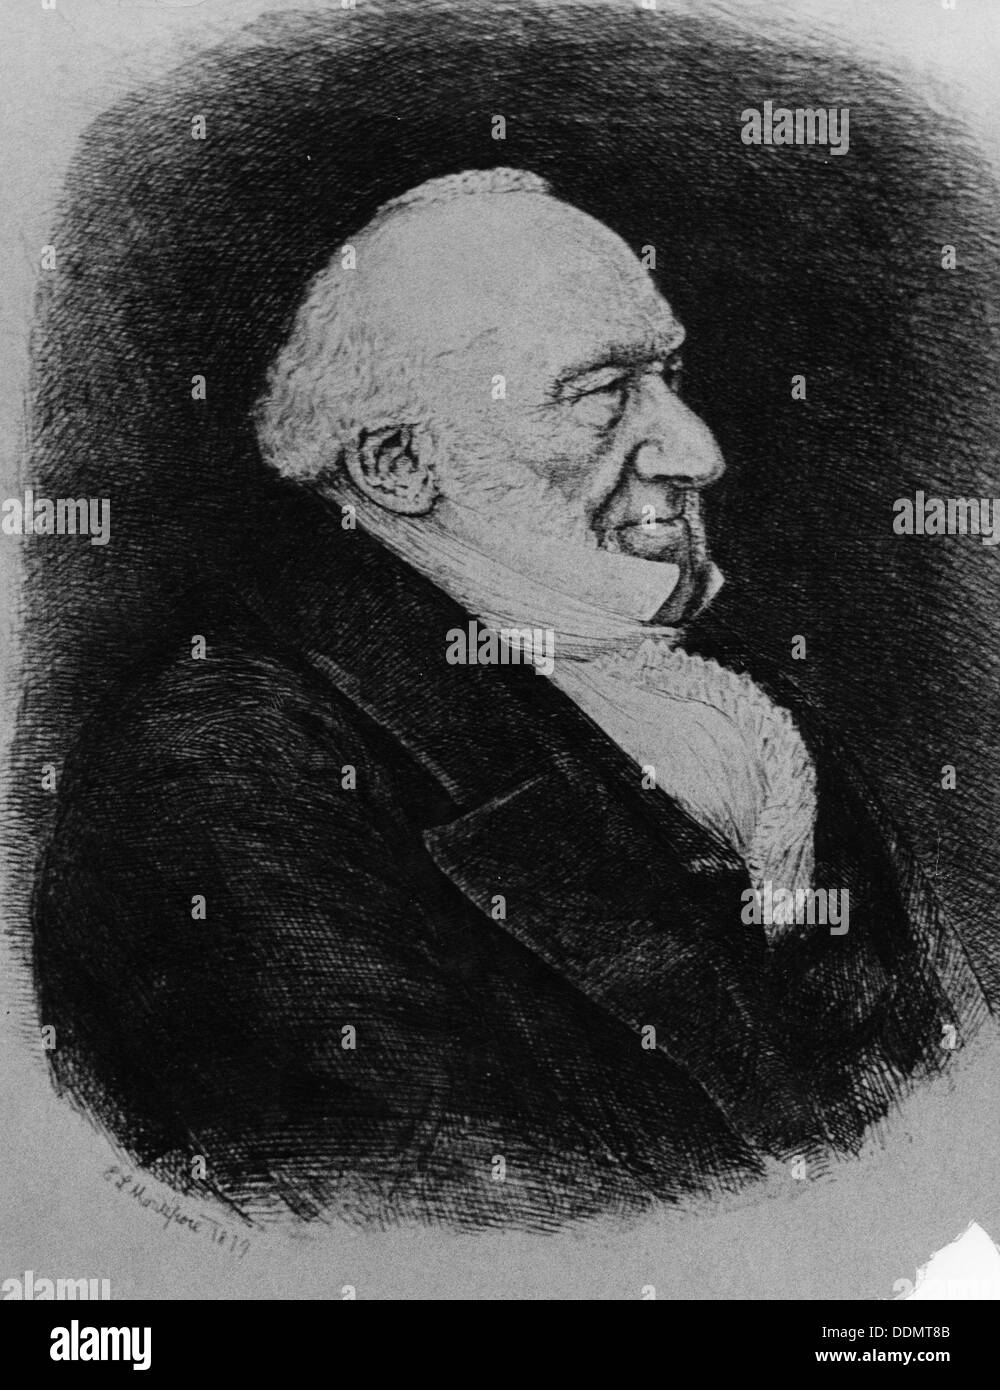 Sir Moses Montefiore (1784-1885), Jewish banker and philanthropist. - Stock Image